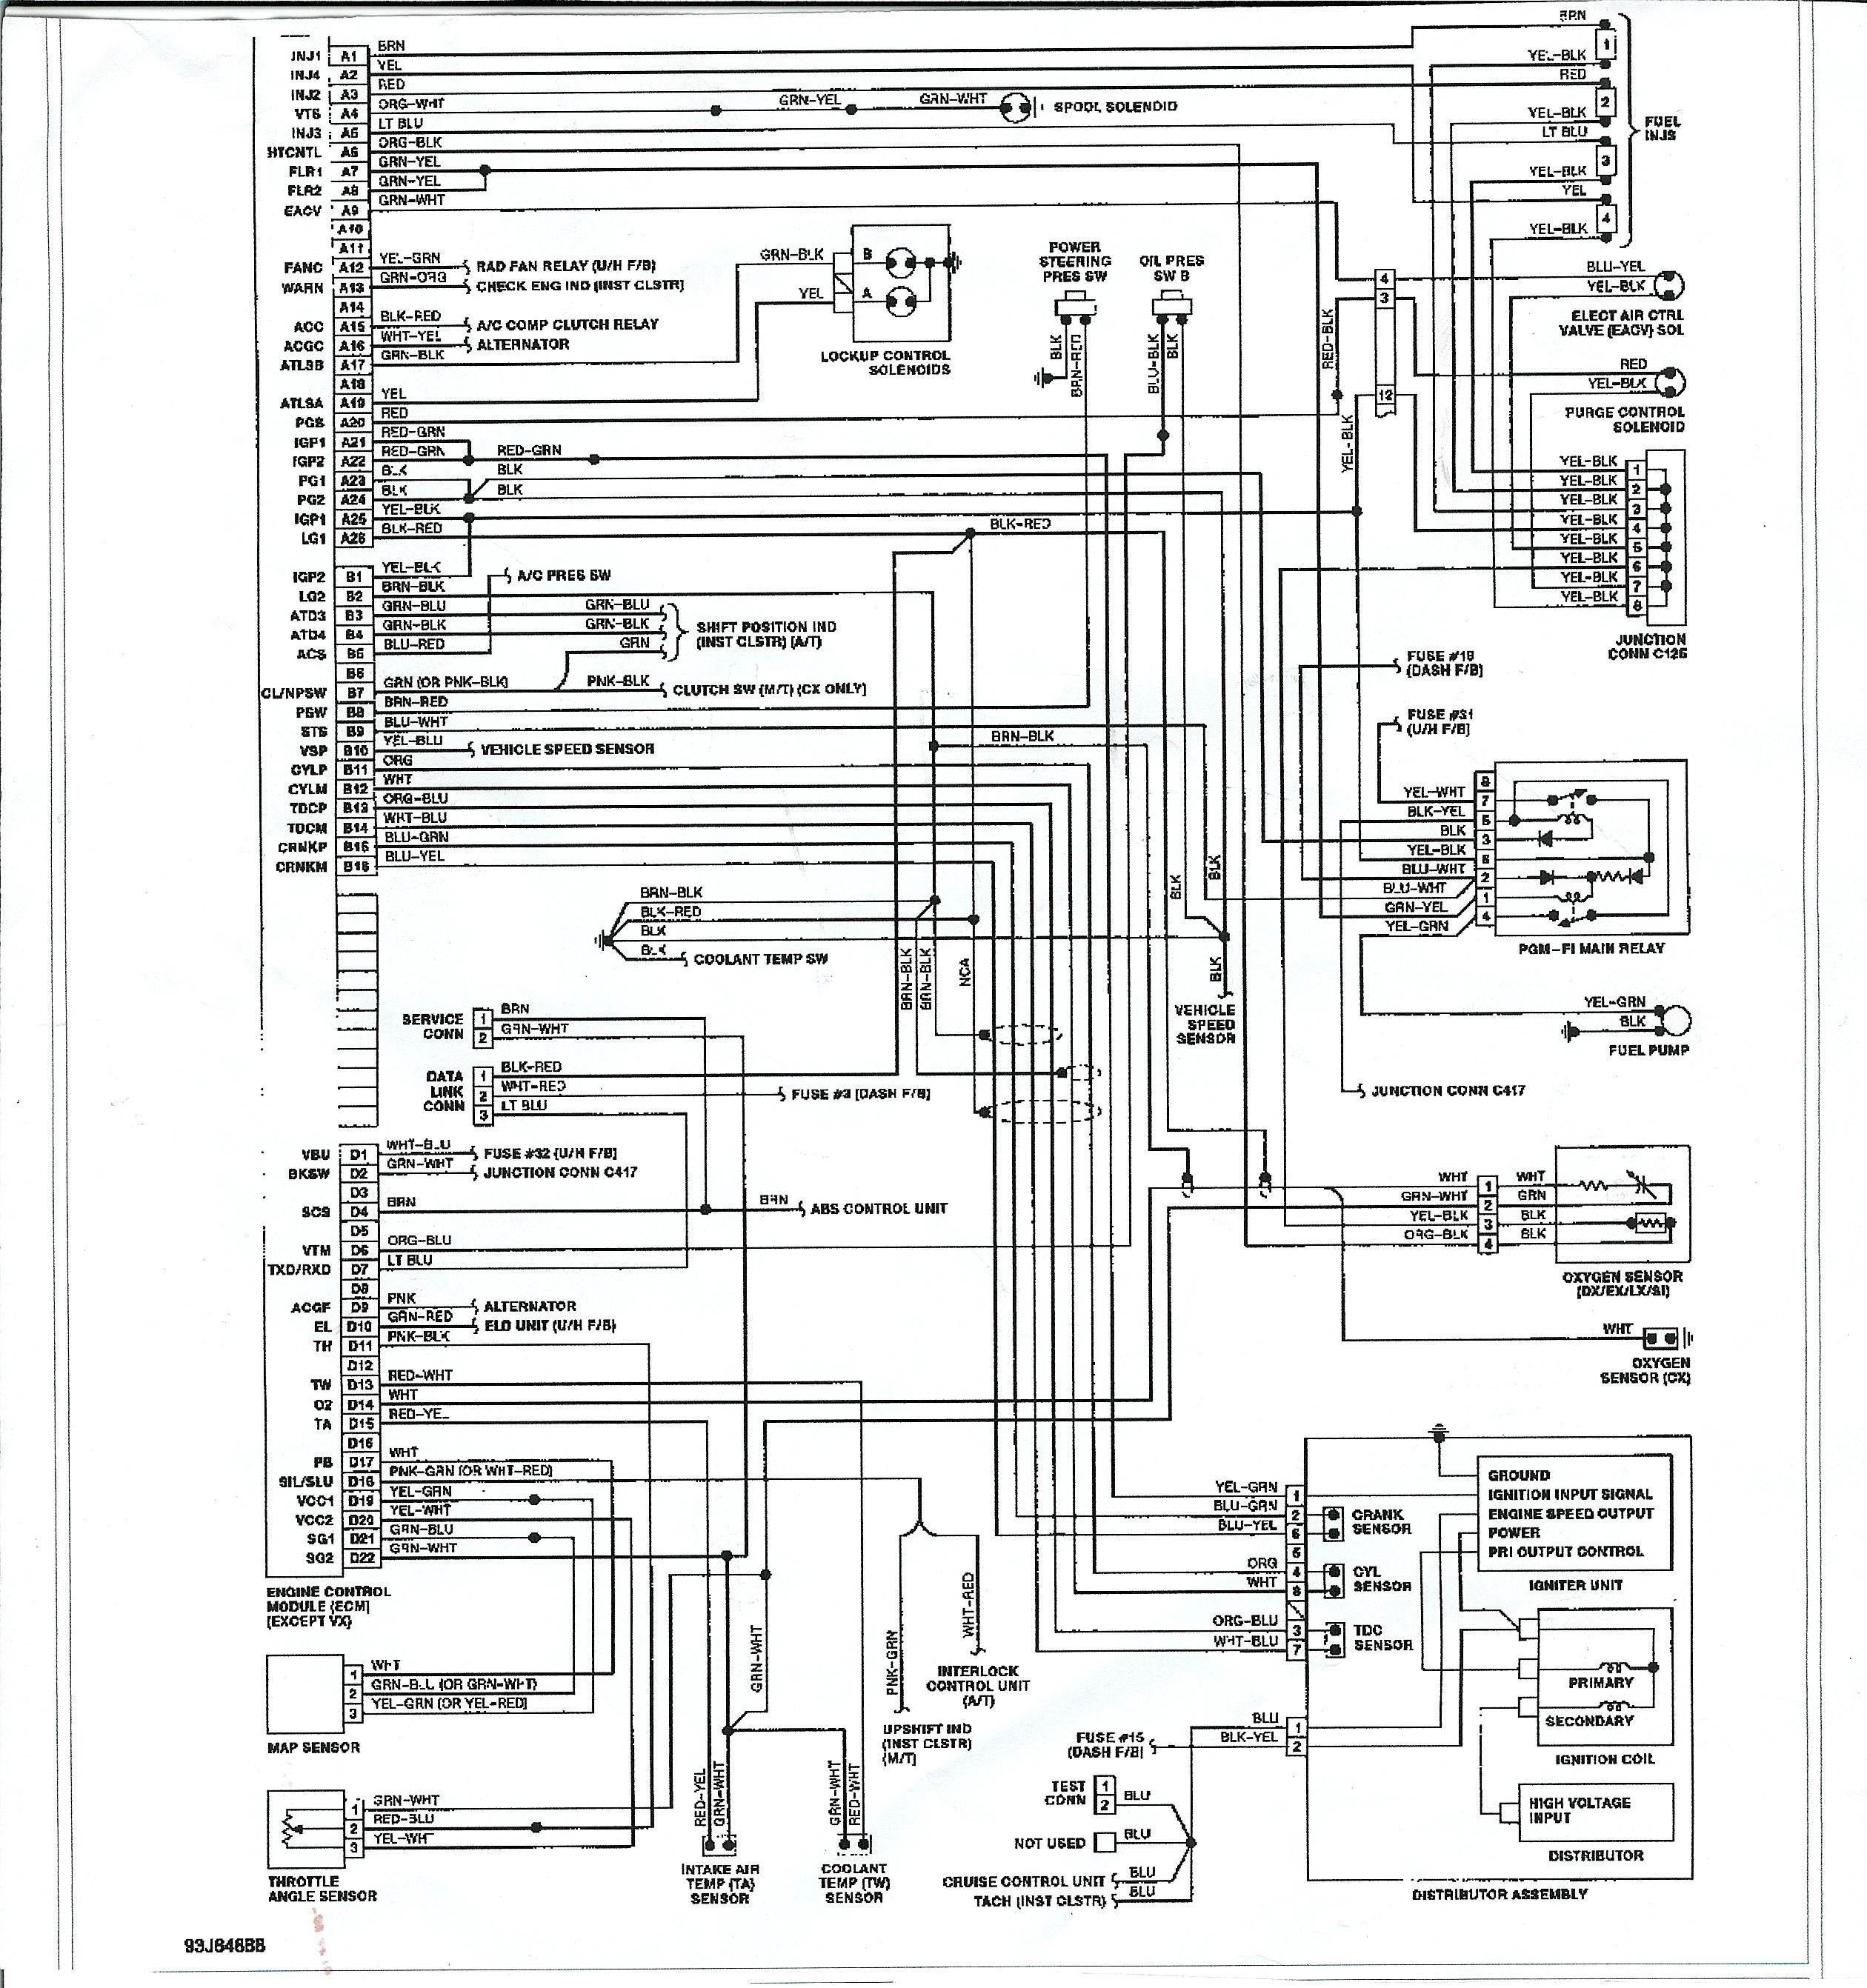 toyota engine diagram mazda 323 1993 wiring diagram wiring diagrams